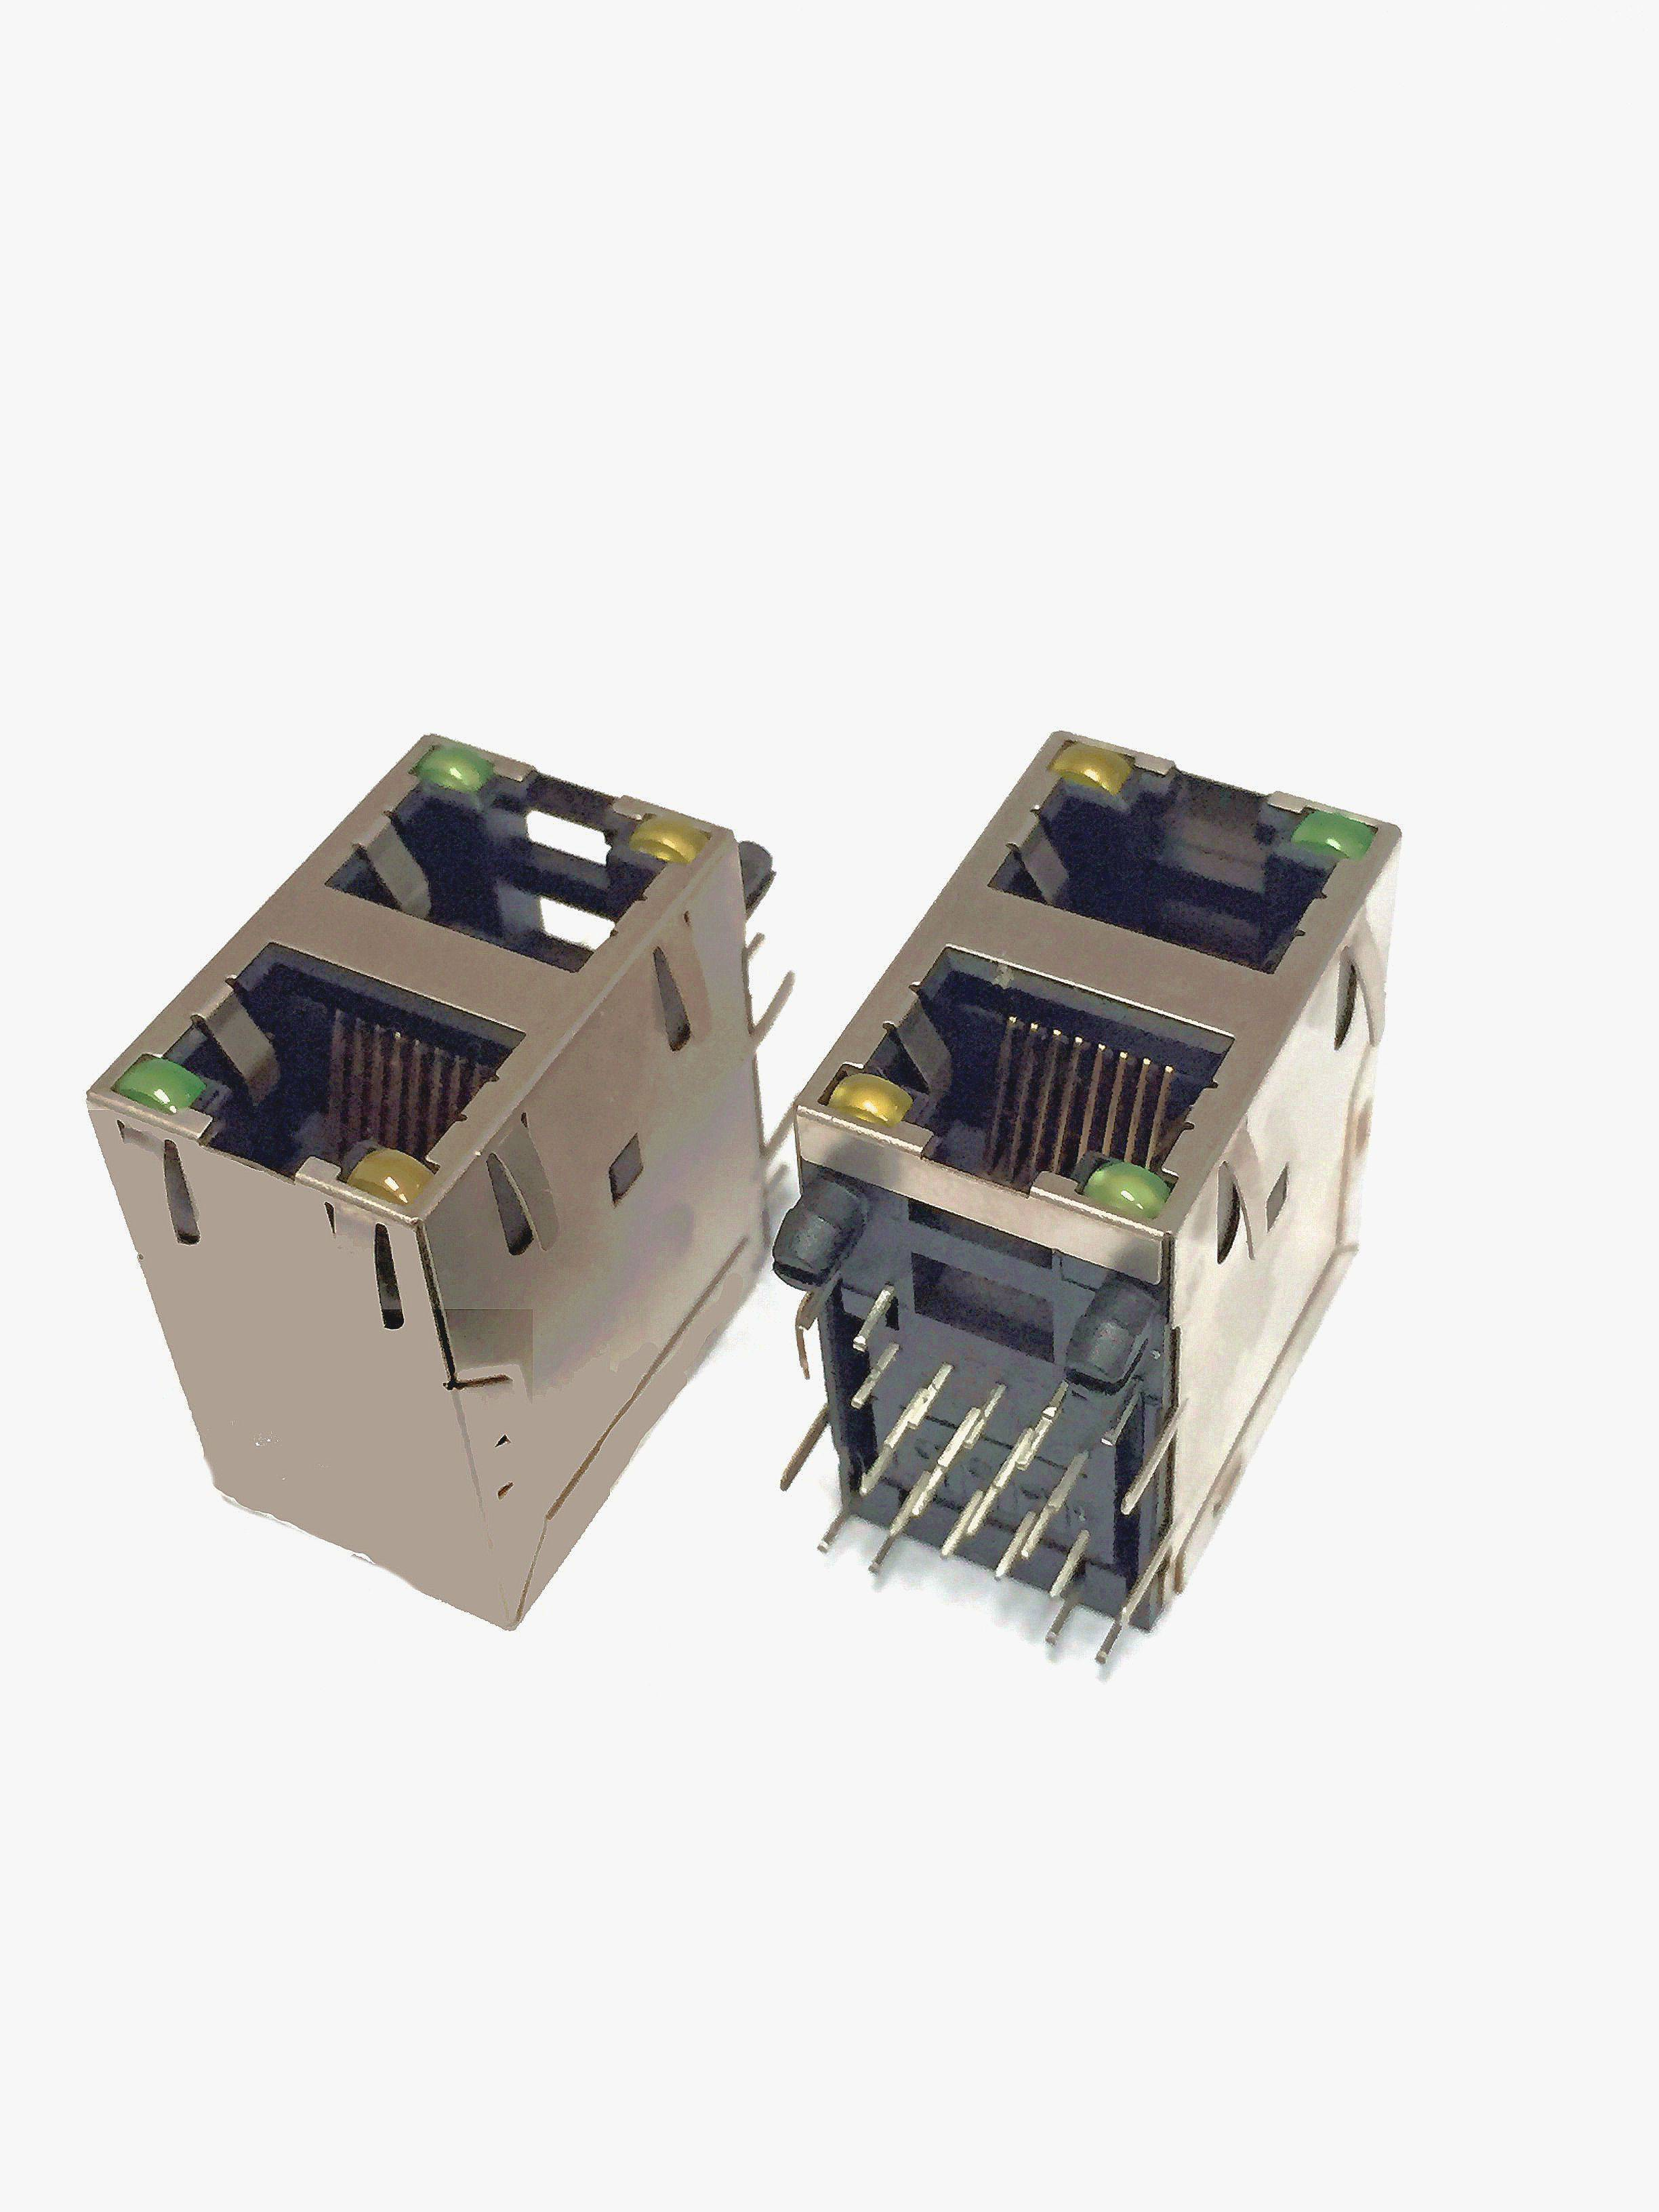 2 X 1 Port Stacked RJ45 Modular Phone Jack , 100 / 1000M Shielded RJ45 Connectors